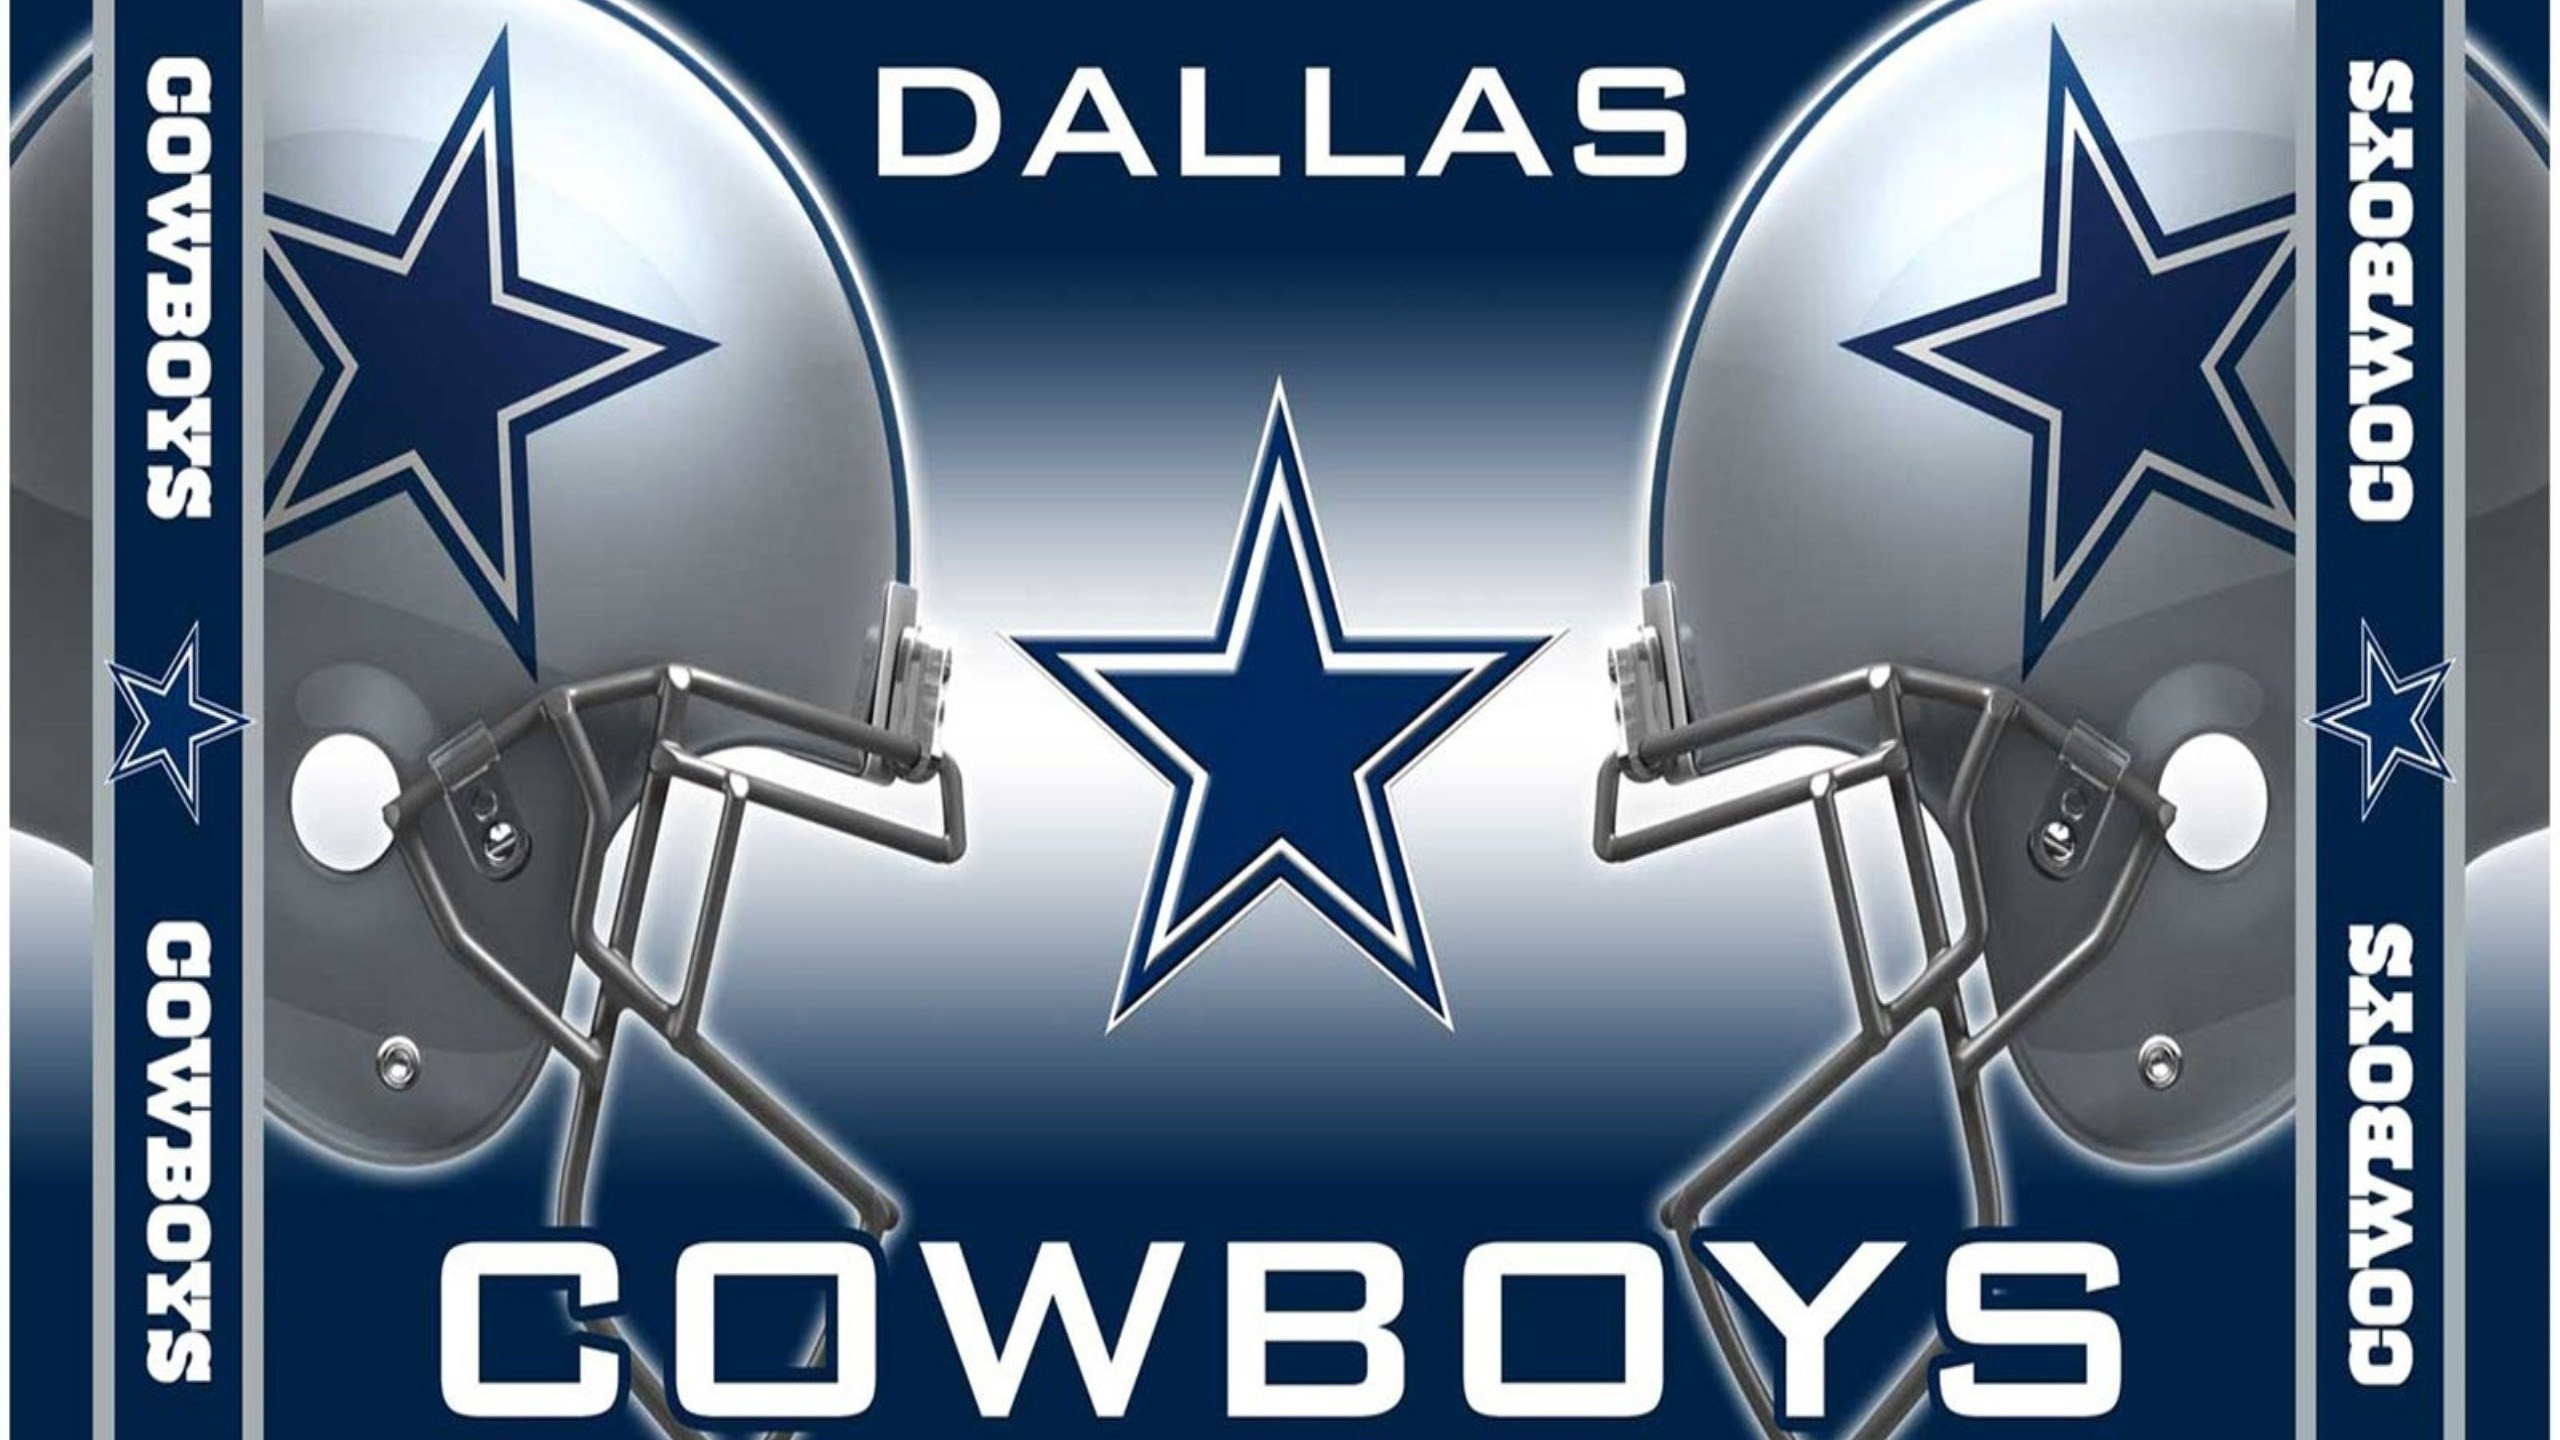 2560x1440 Dallas Cowboys Images Wallpapers 183 ①